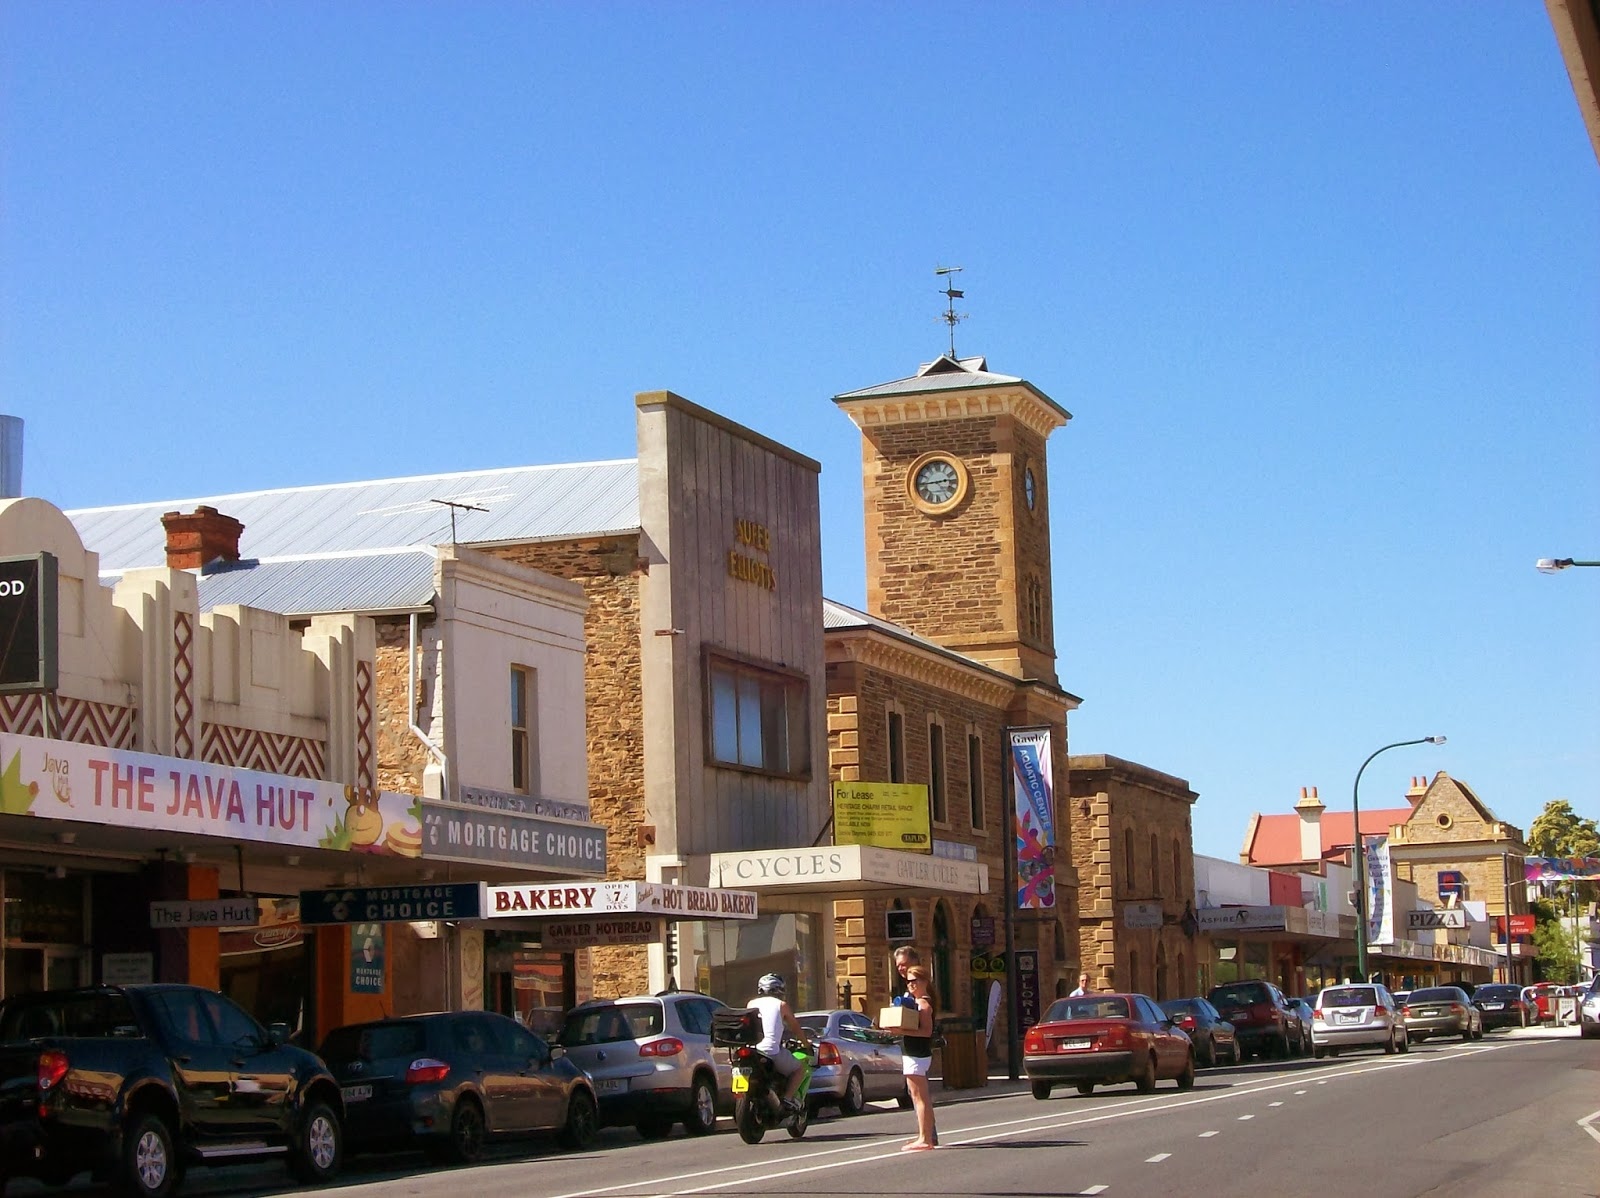 Gawler Australia  city photo : Caroline Poh: A Bustling Country Town in South Australia